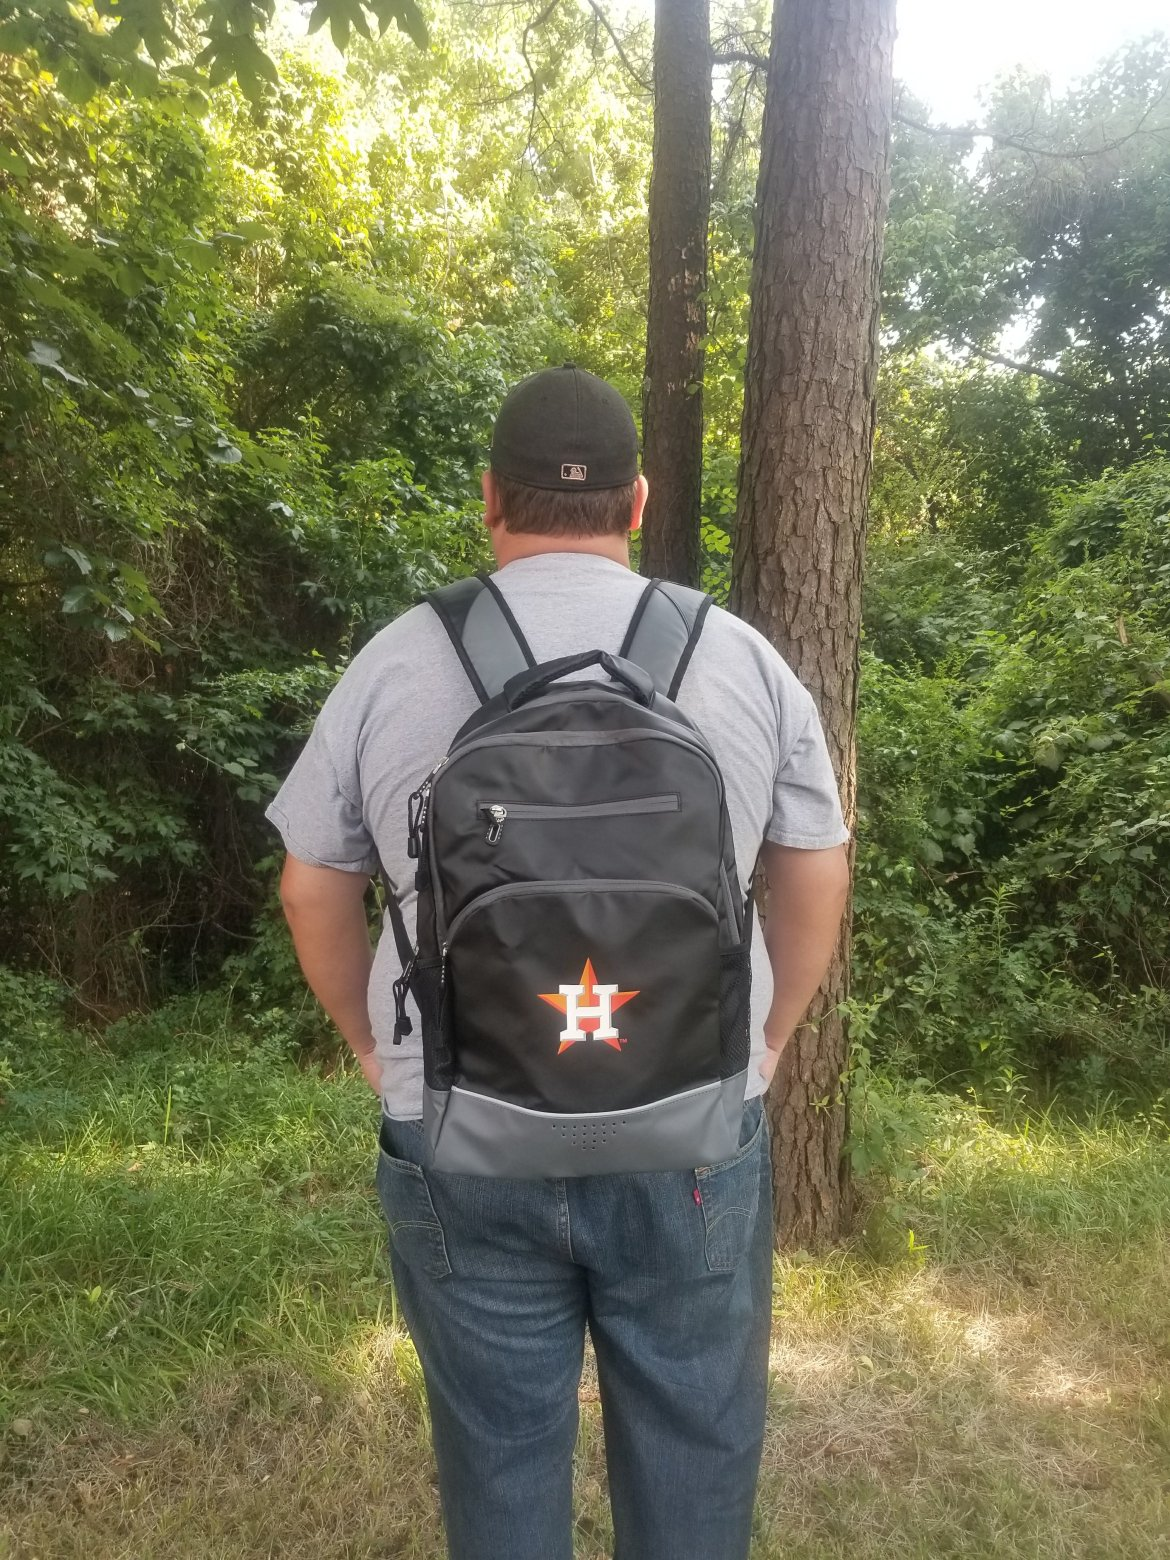 Family Road Trip Essentials From The Northwest Company (Attn Disney & Sports Fans!) Check out the Disney and Sports items they offer! We love our Disney Blanket and Astros Backpack!